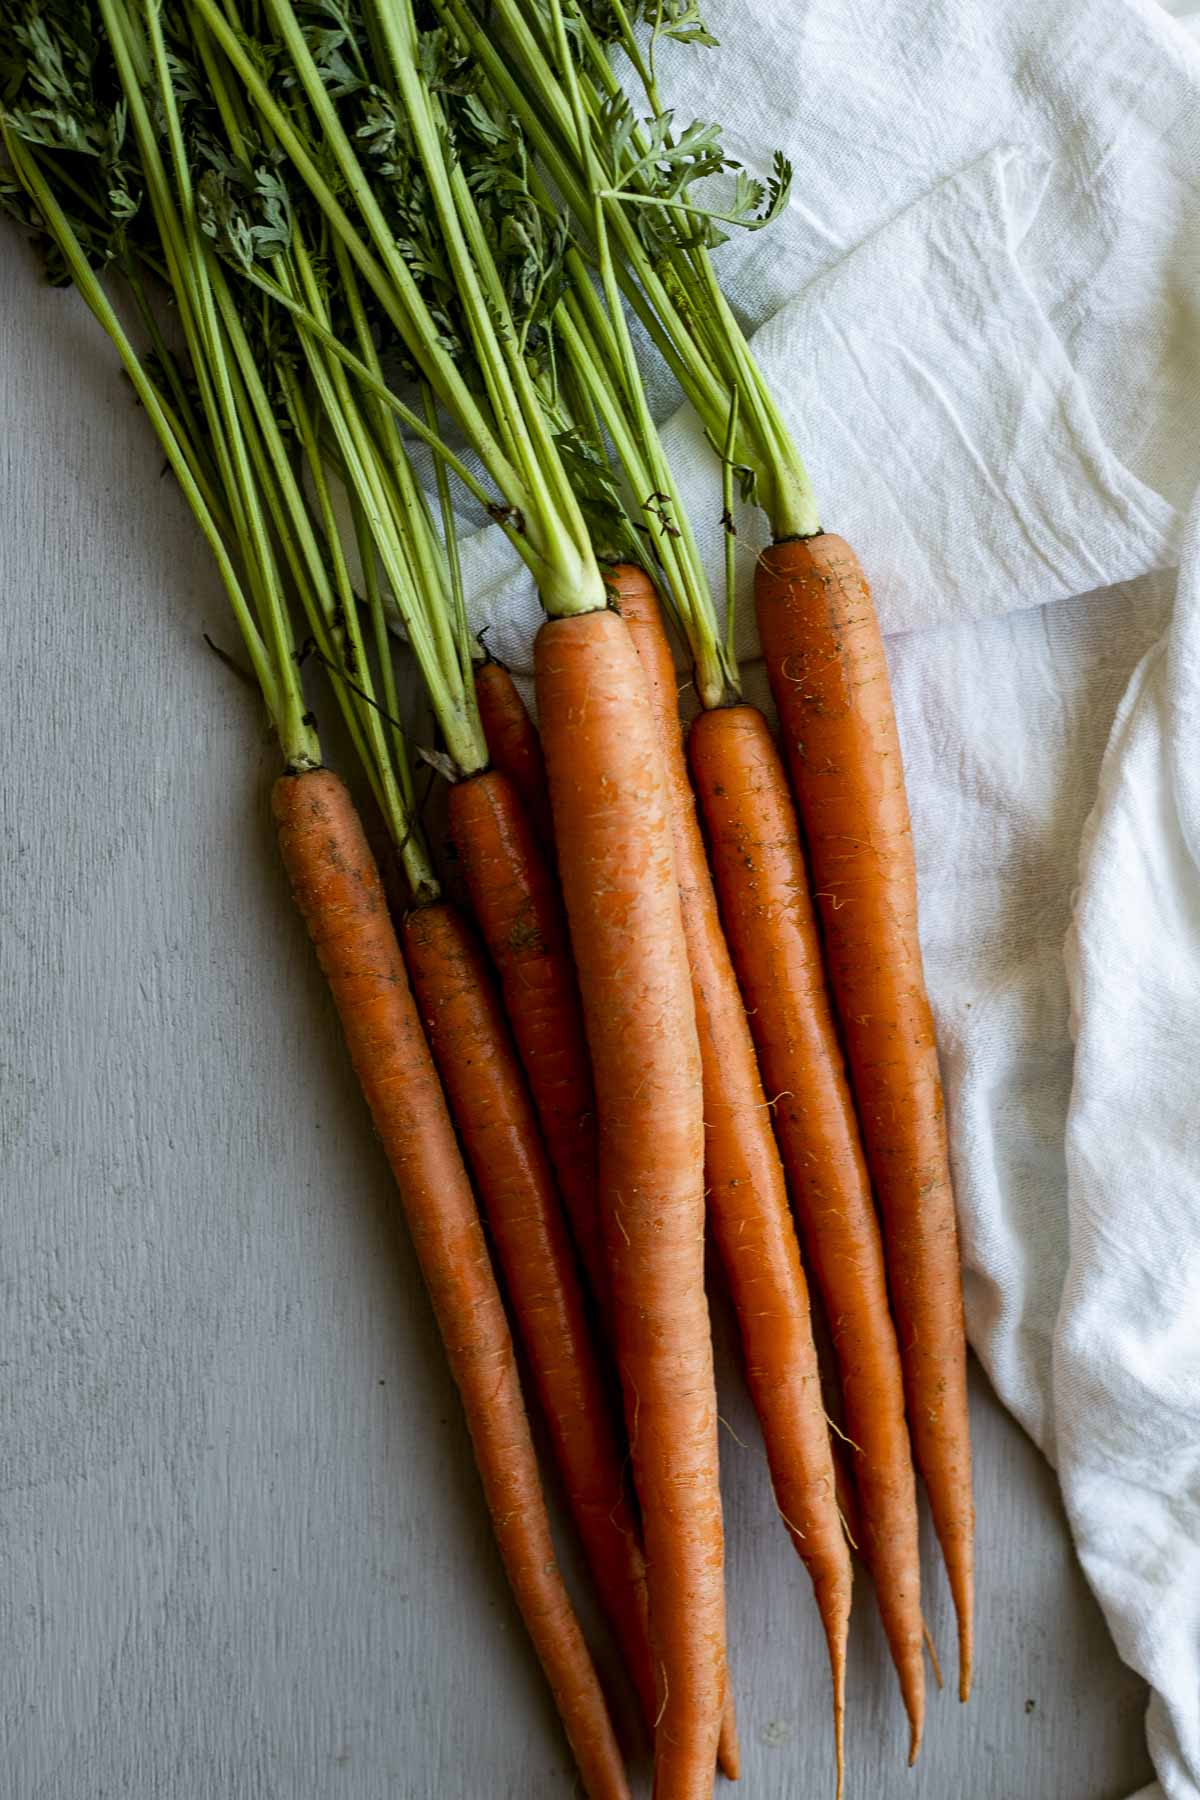 Overhead view of a bunch of raw whole carrots.